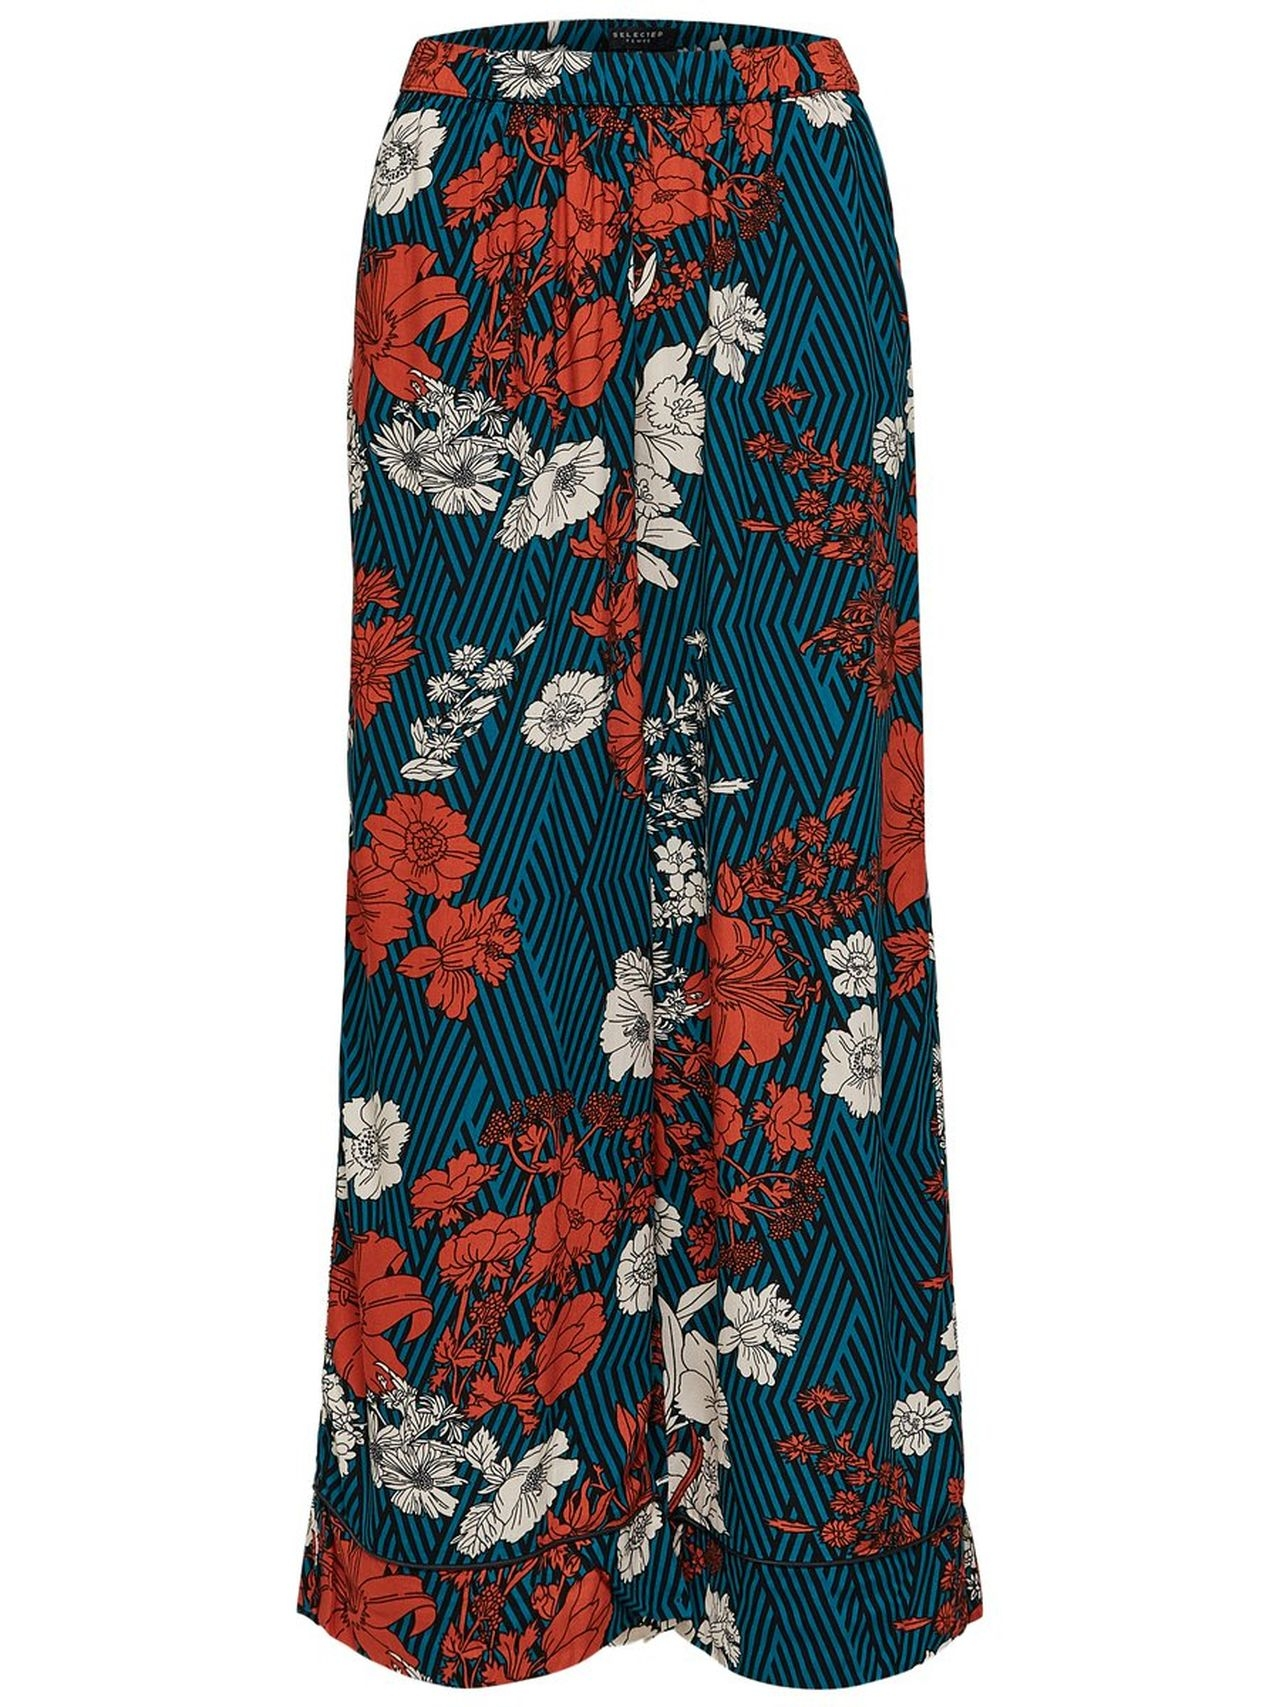 SELECTED Floral Printed – Trousers Kvinna Grön